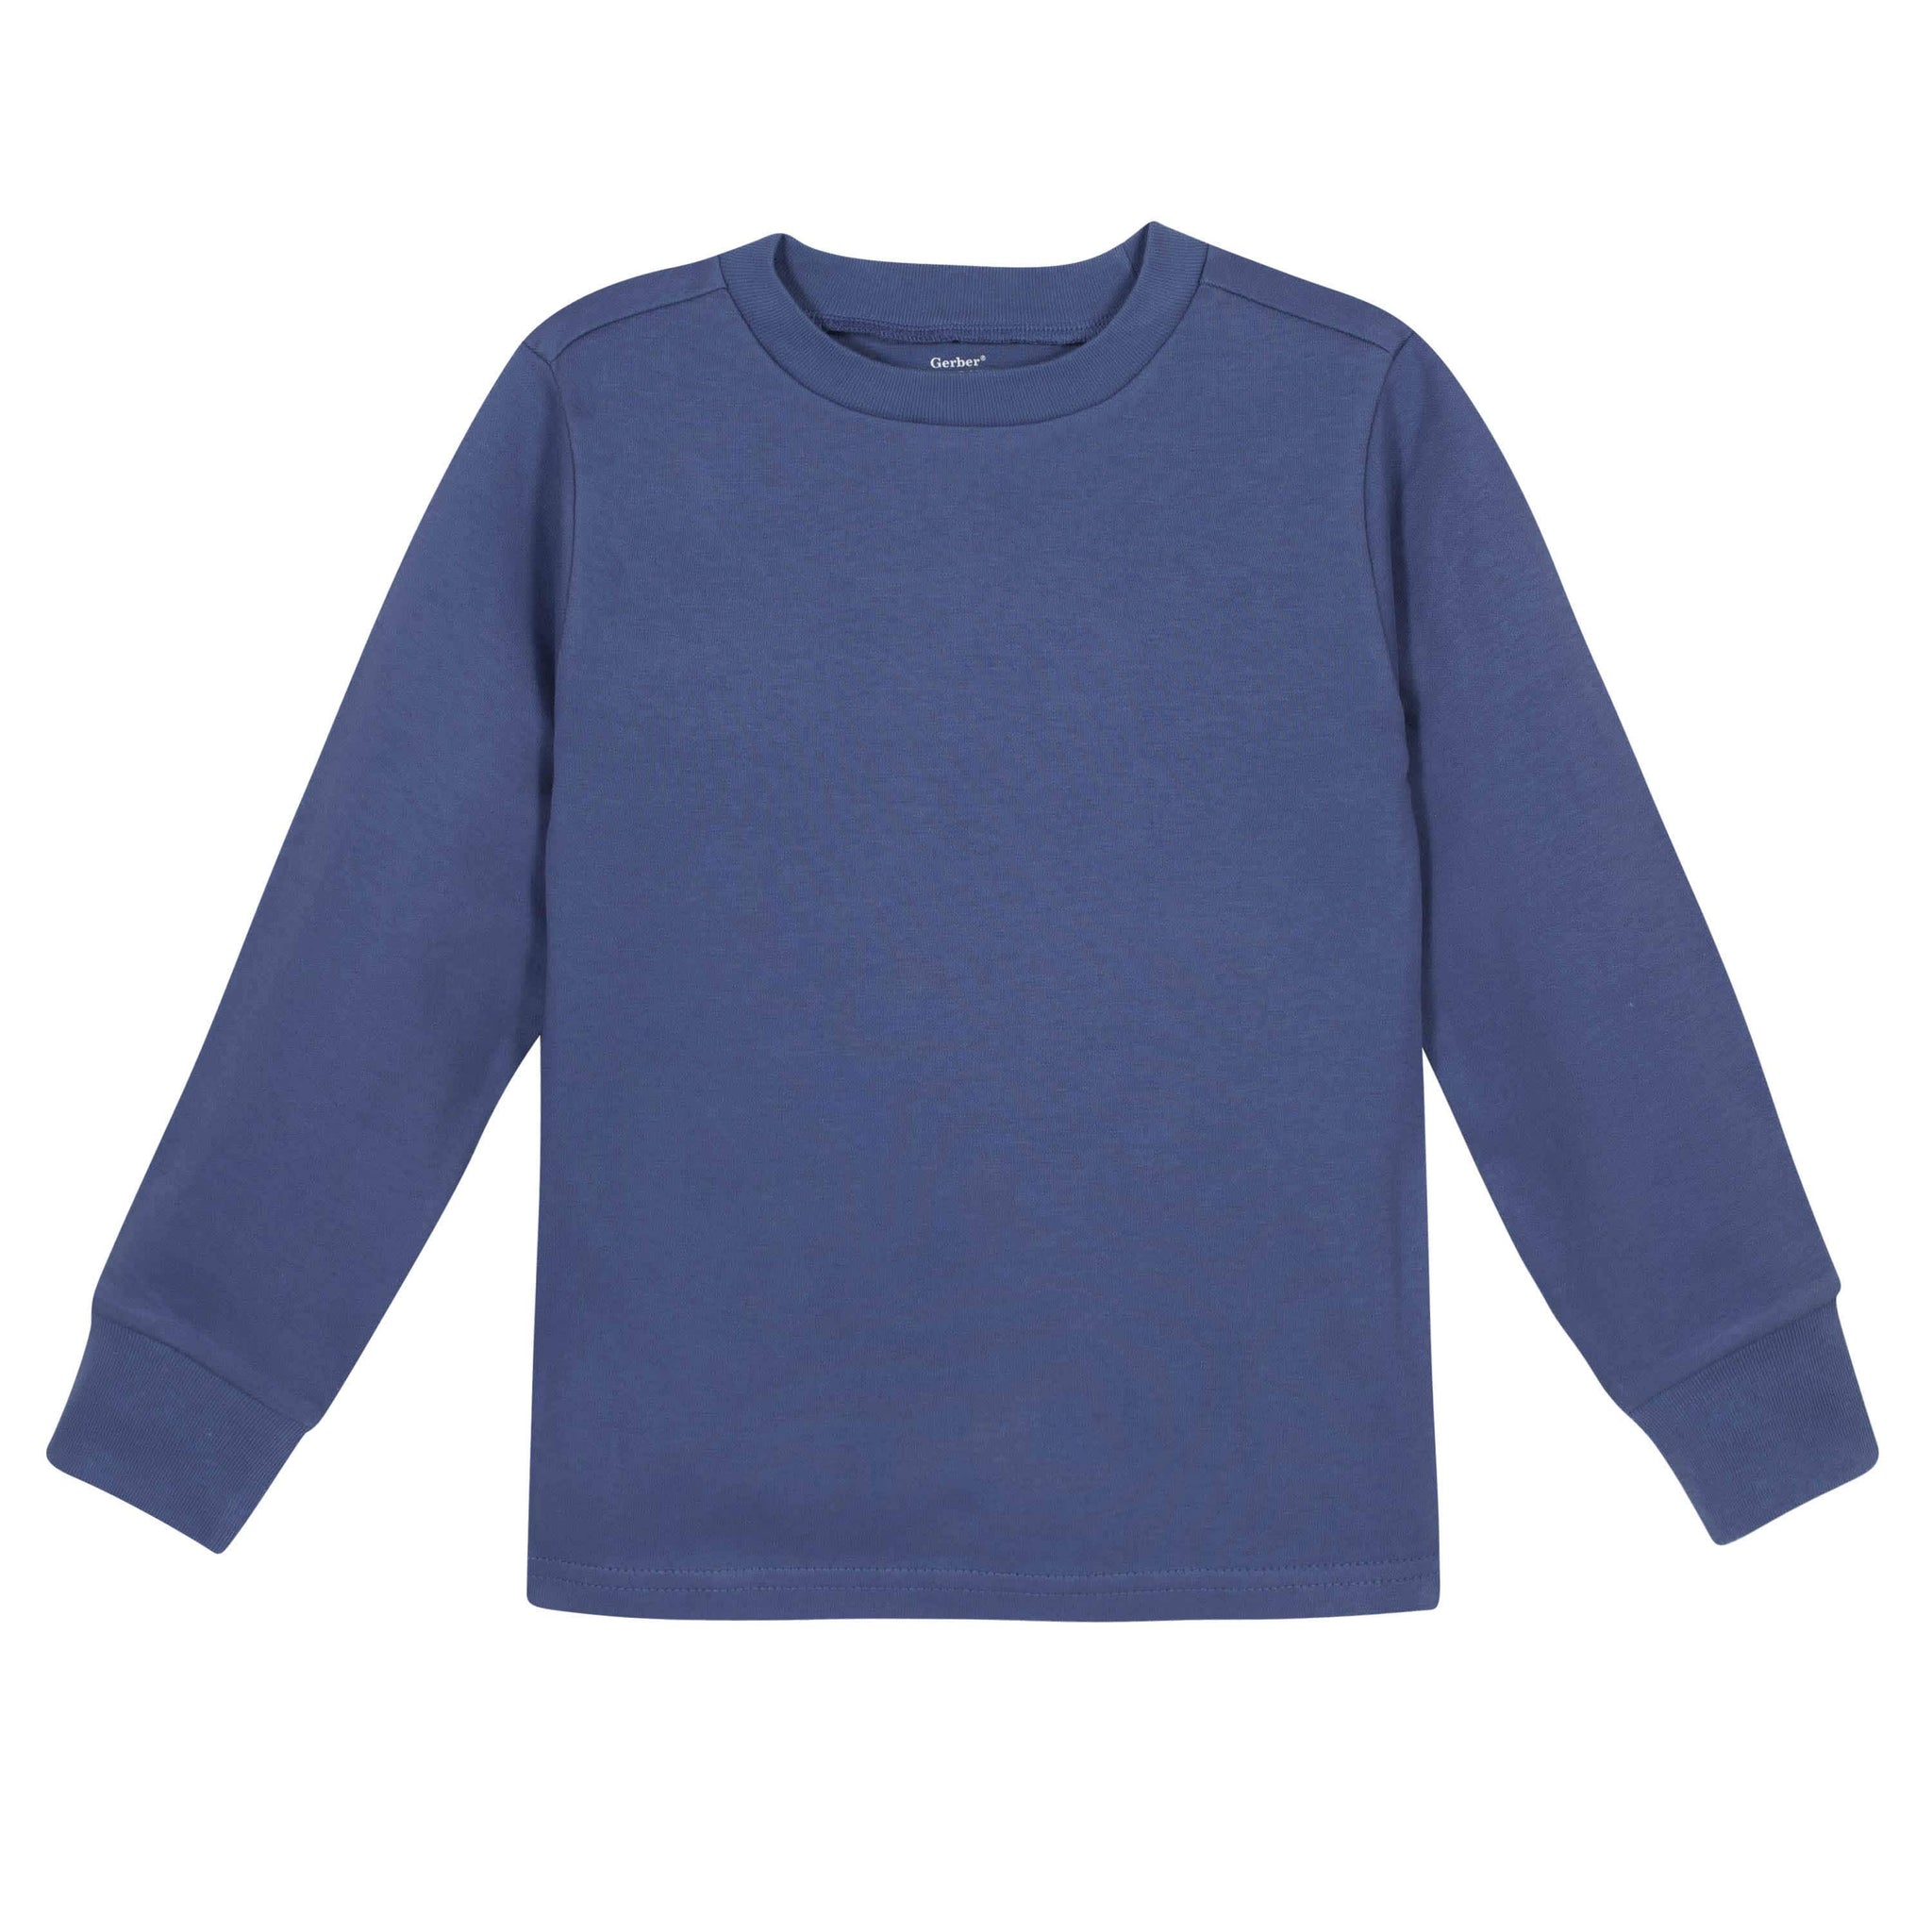 Gerber® Premium Blue Long Sleeve Tee Shirt - 10 Colors Available